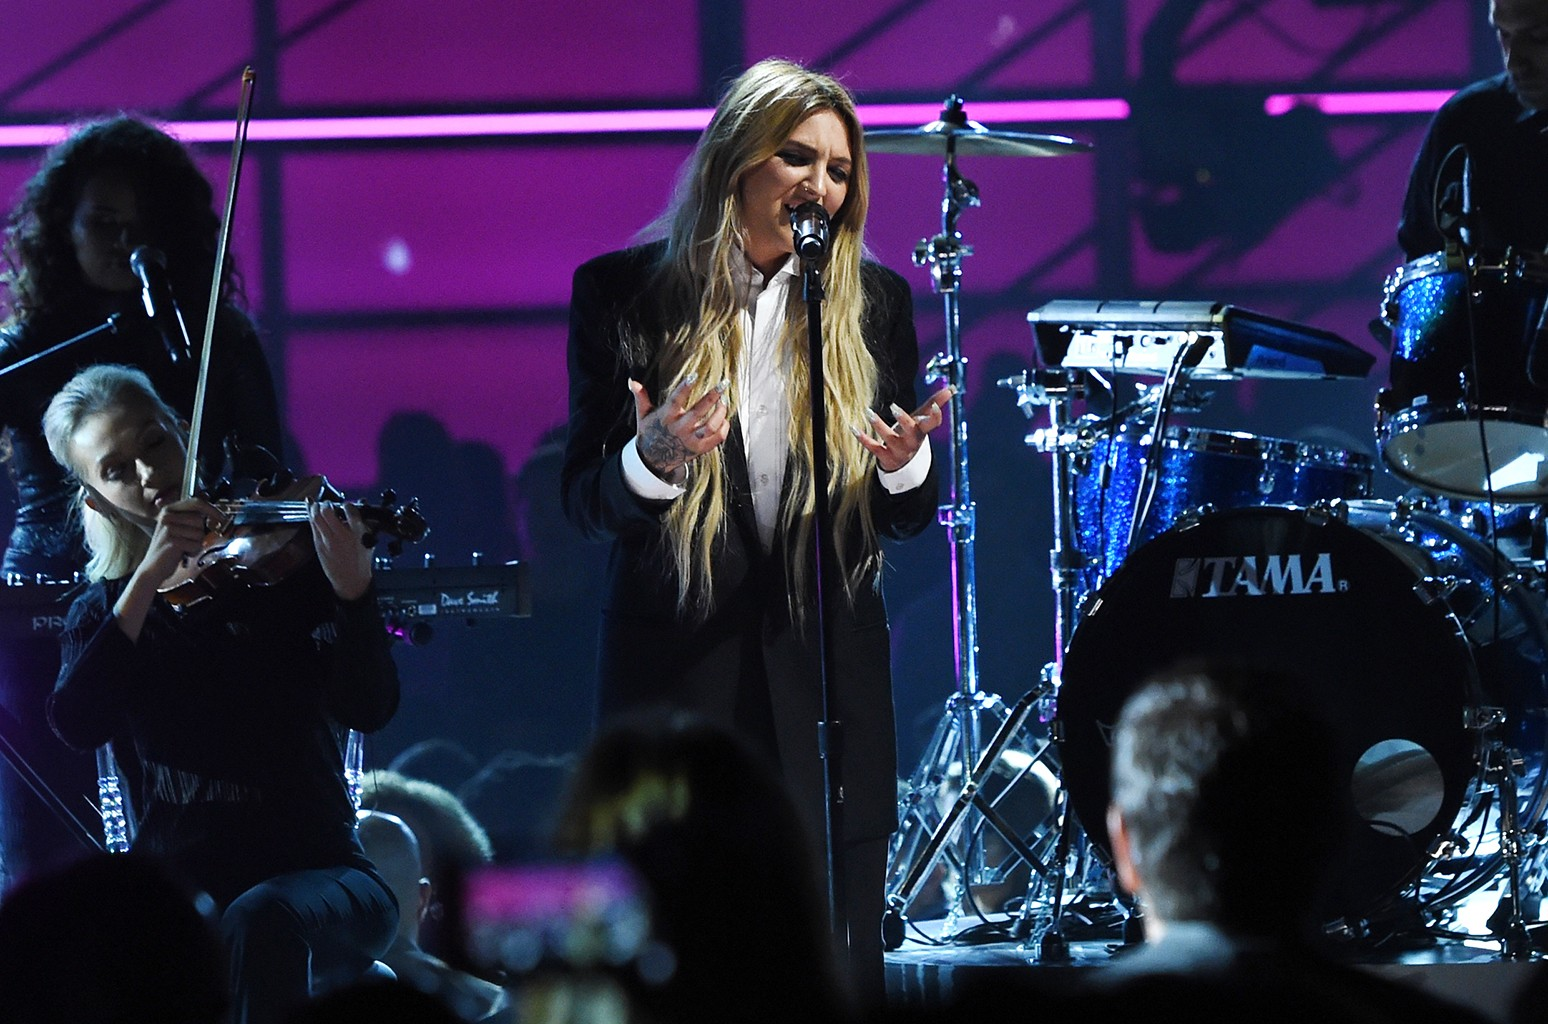 Julia Michaels performs onstage during the 2017 Billboard Music Awards at T-Mobile Arena on May 21, 2017 in Las Vegas.